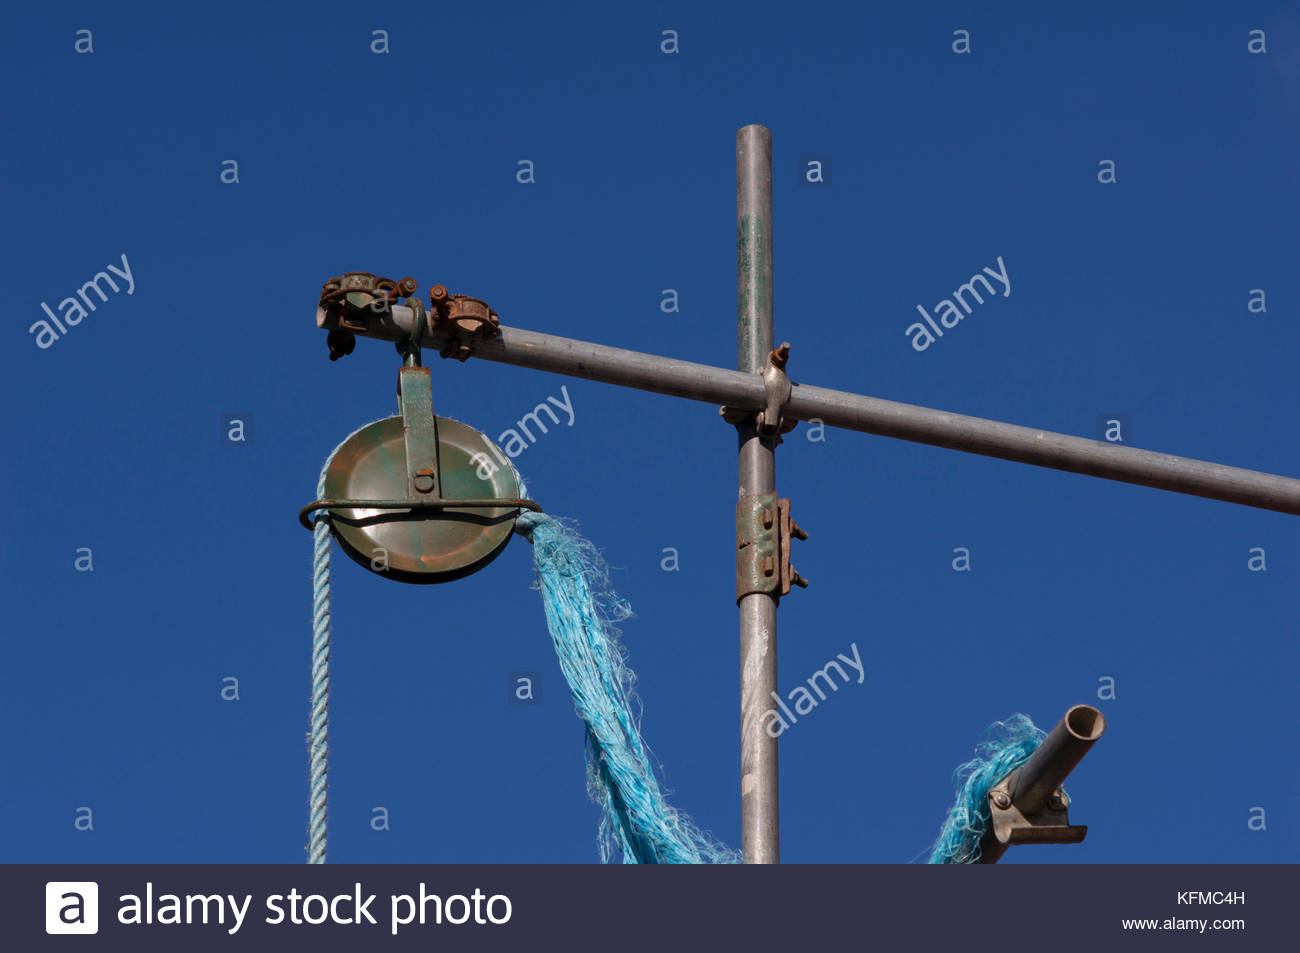 Pulley on scaffolding - Stock Image